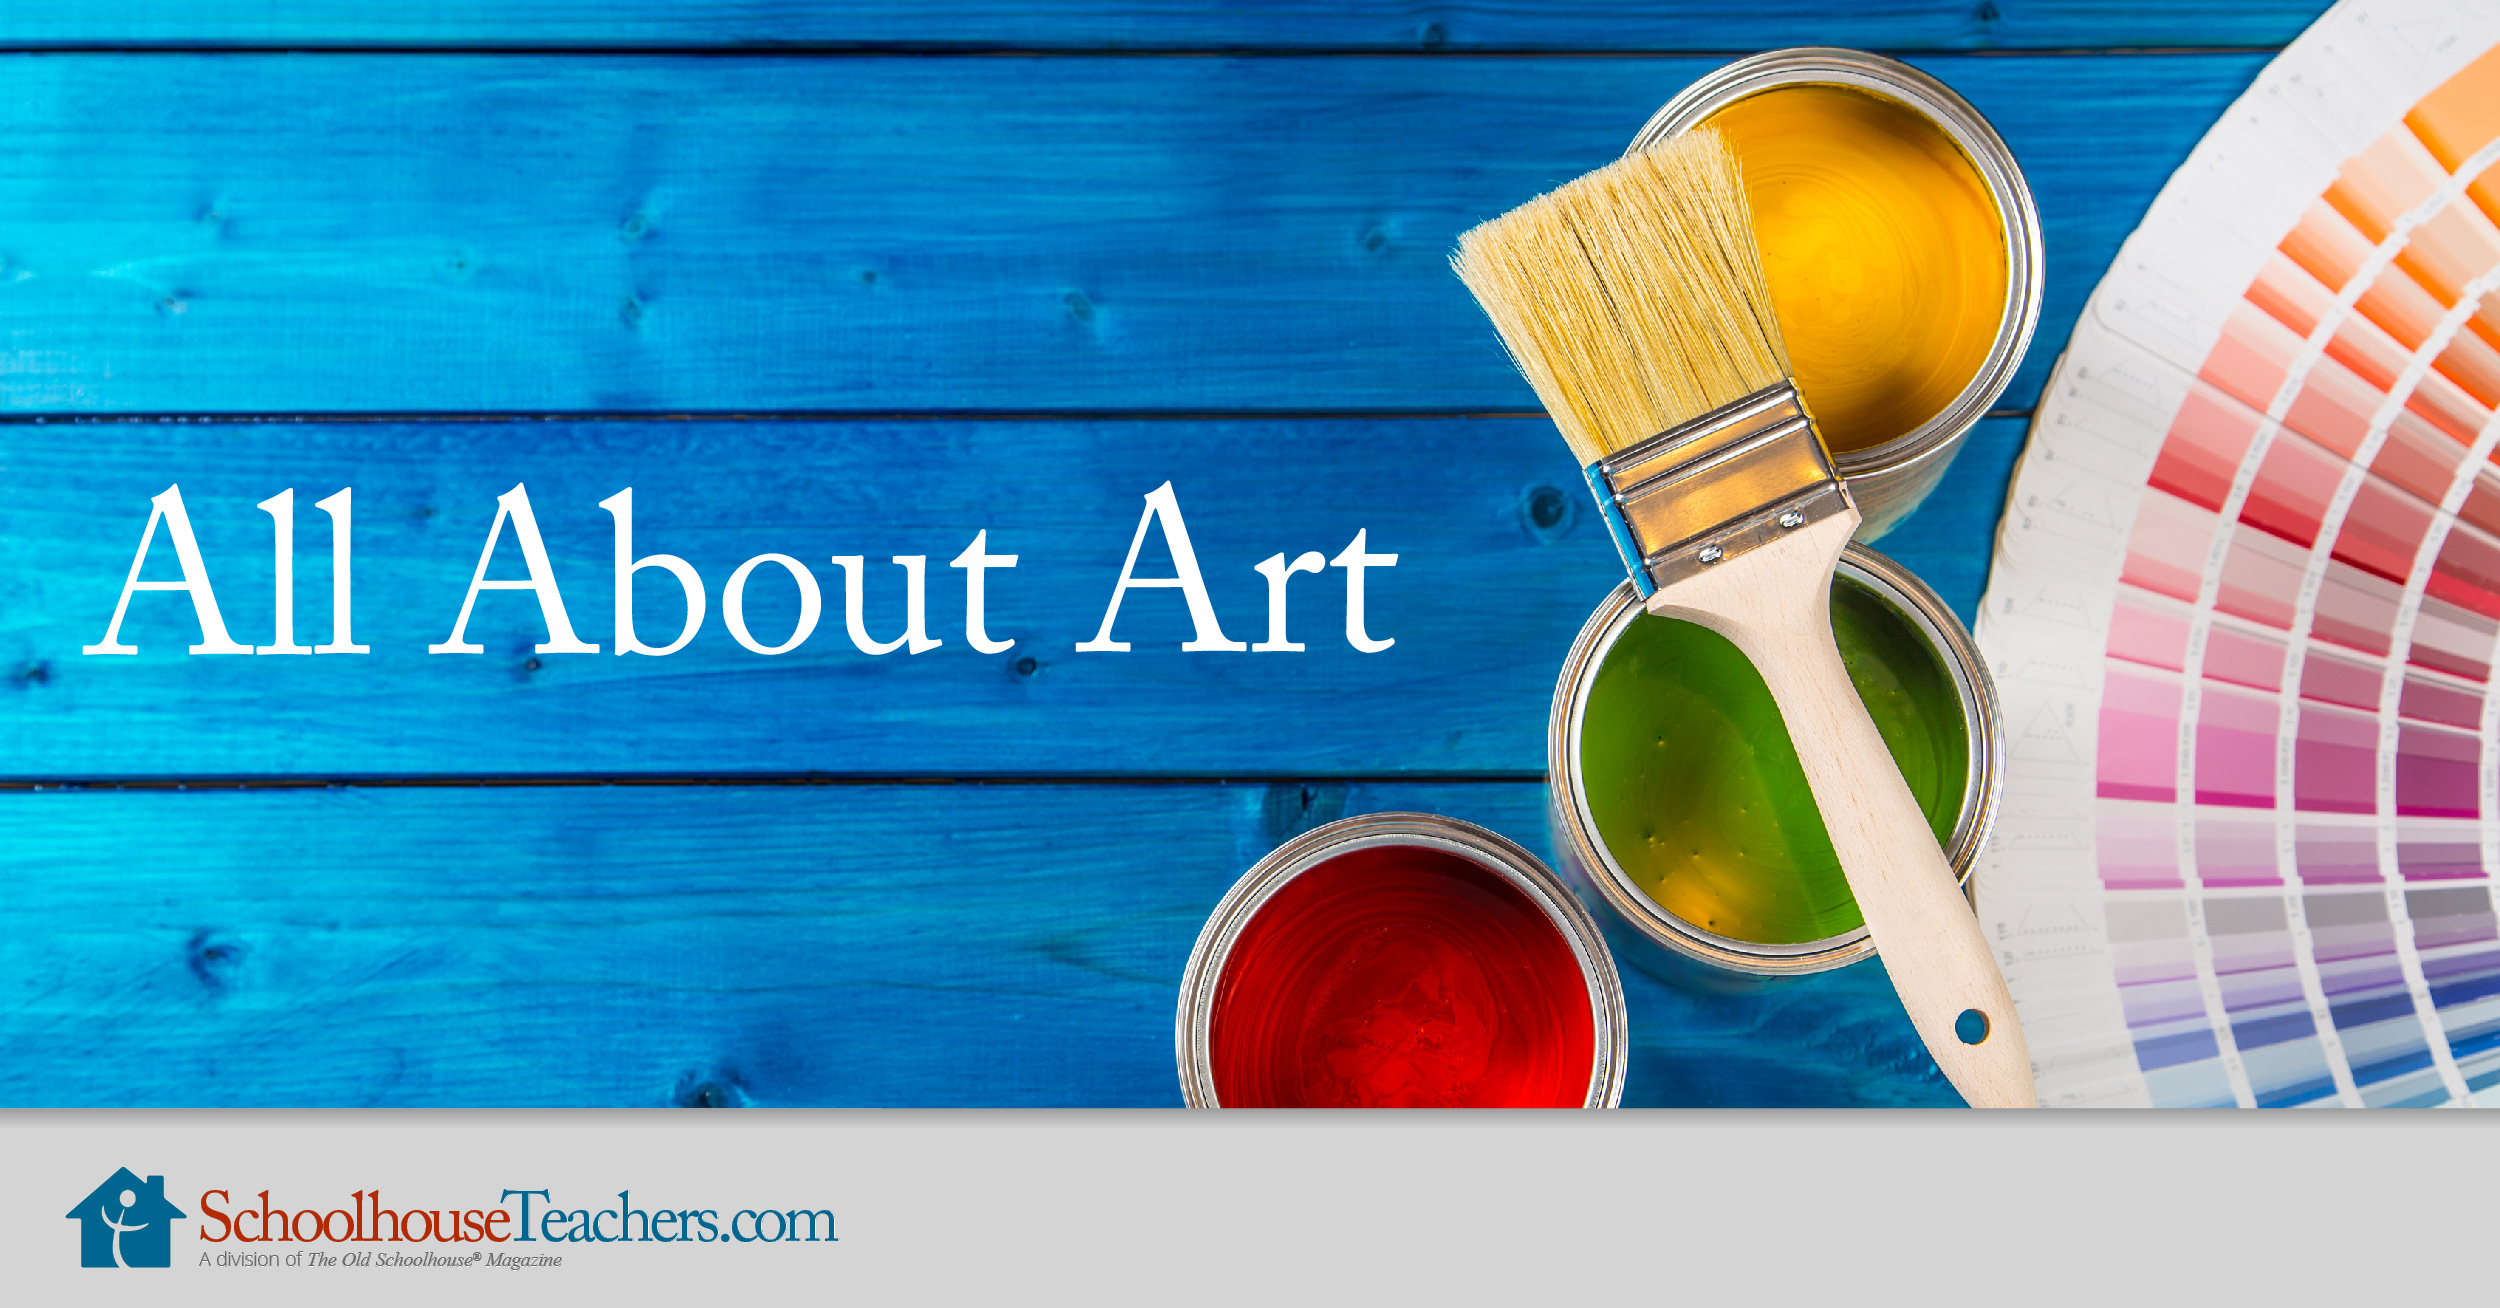 SchoolhouseTeachers.com, Online Classes, All About Art